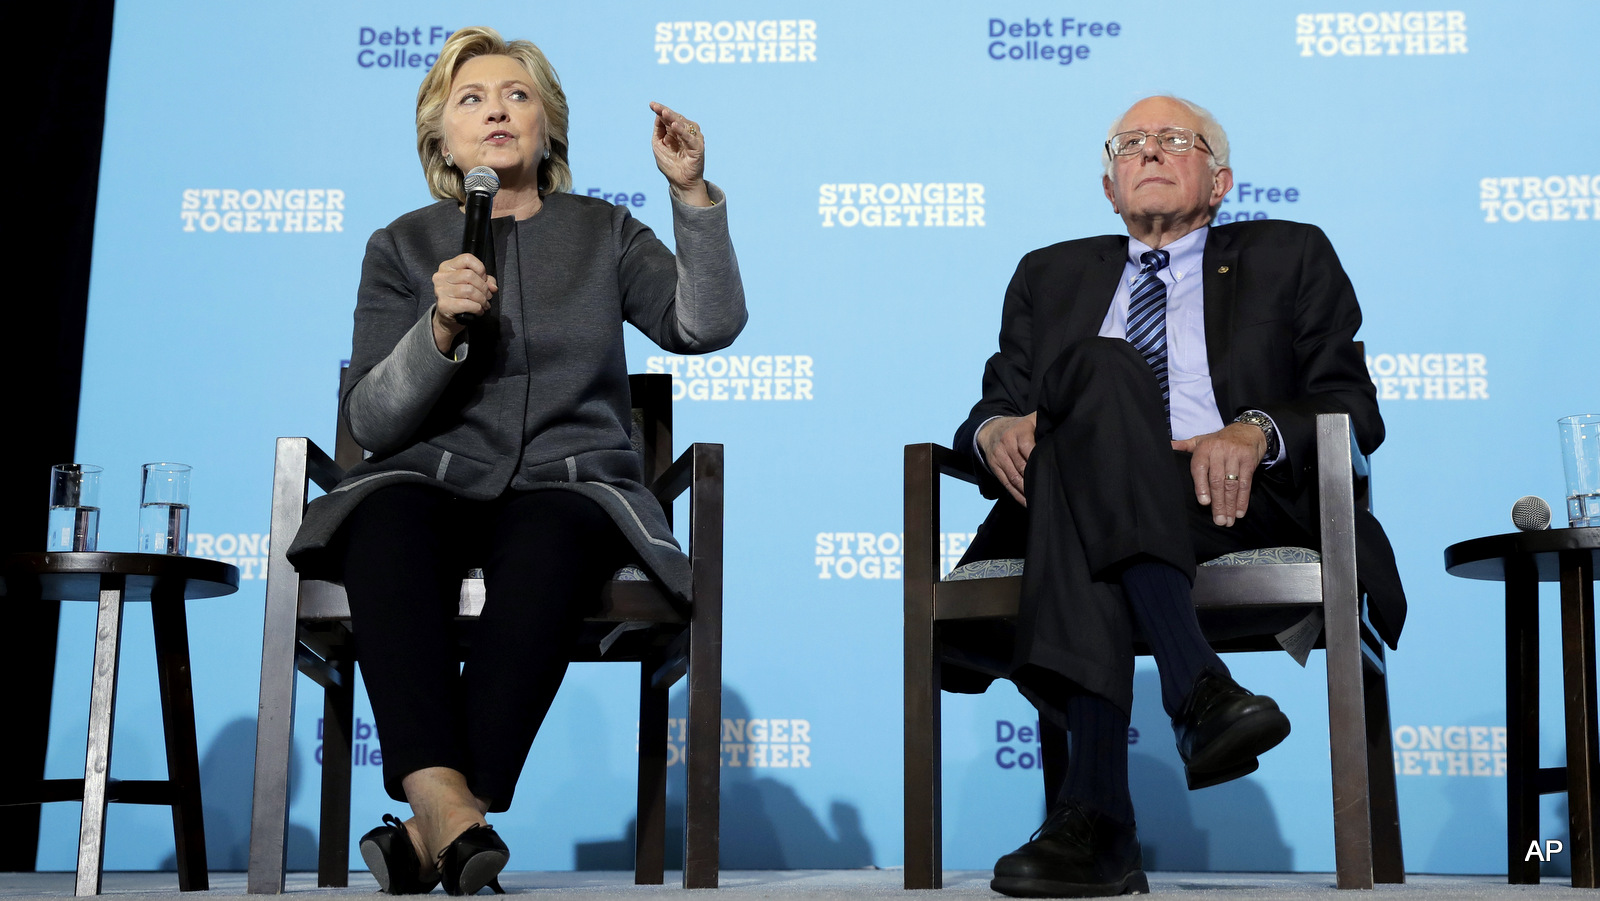 Democratic presidential candidate Hillary Clinton and Sen. Bernie Sanders, I-Vt. participate in a panel discussion during a campaign stop at the University Of New Hampshire in Durham, N.H., Wednesday, Sept. 28, 2016.